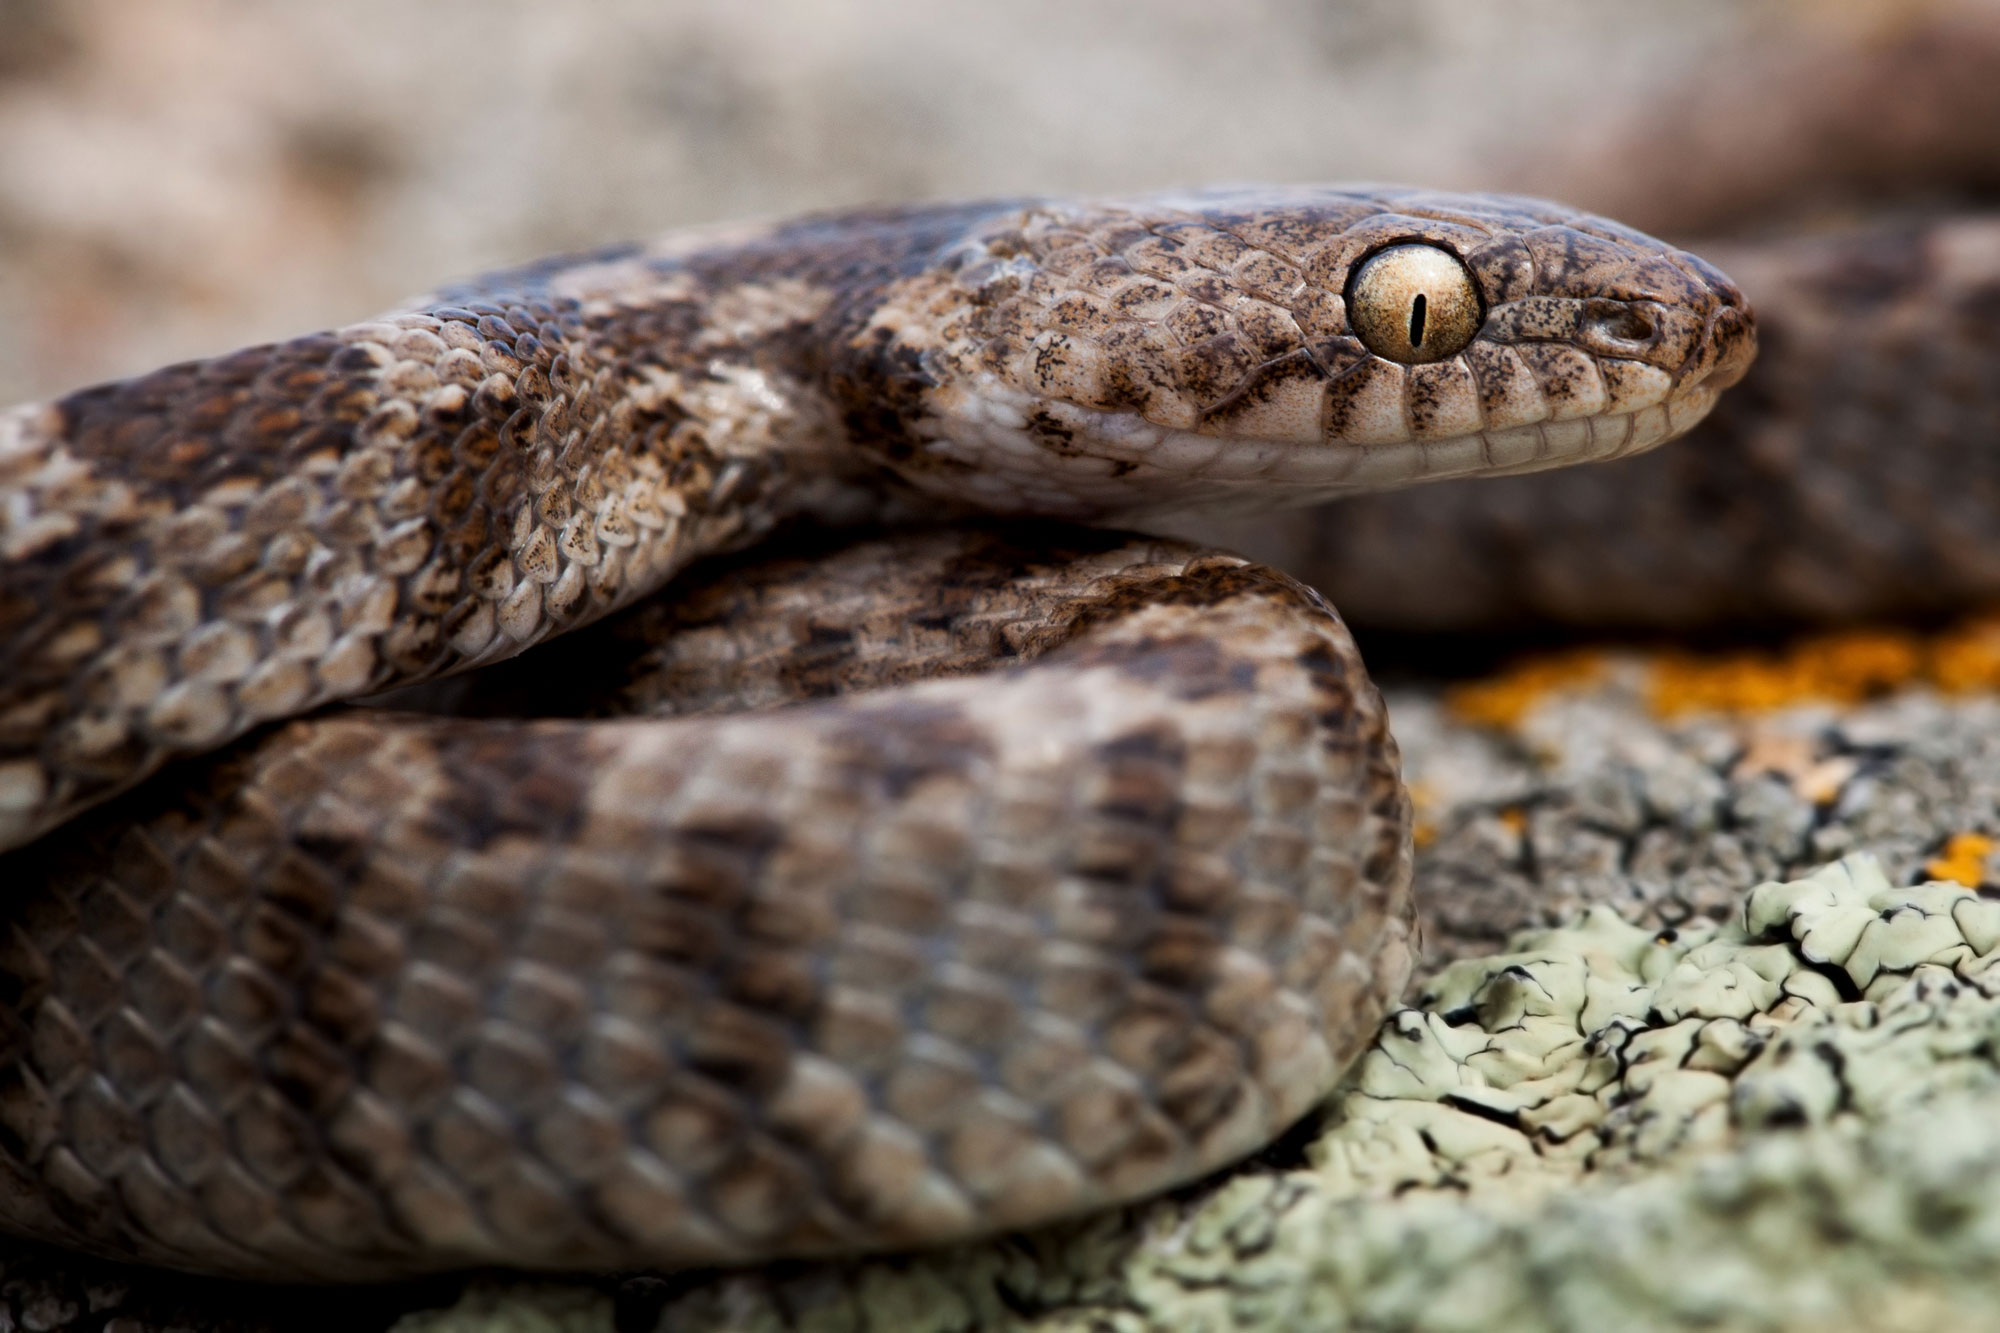 European cat snake (Telescopus fallax)